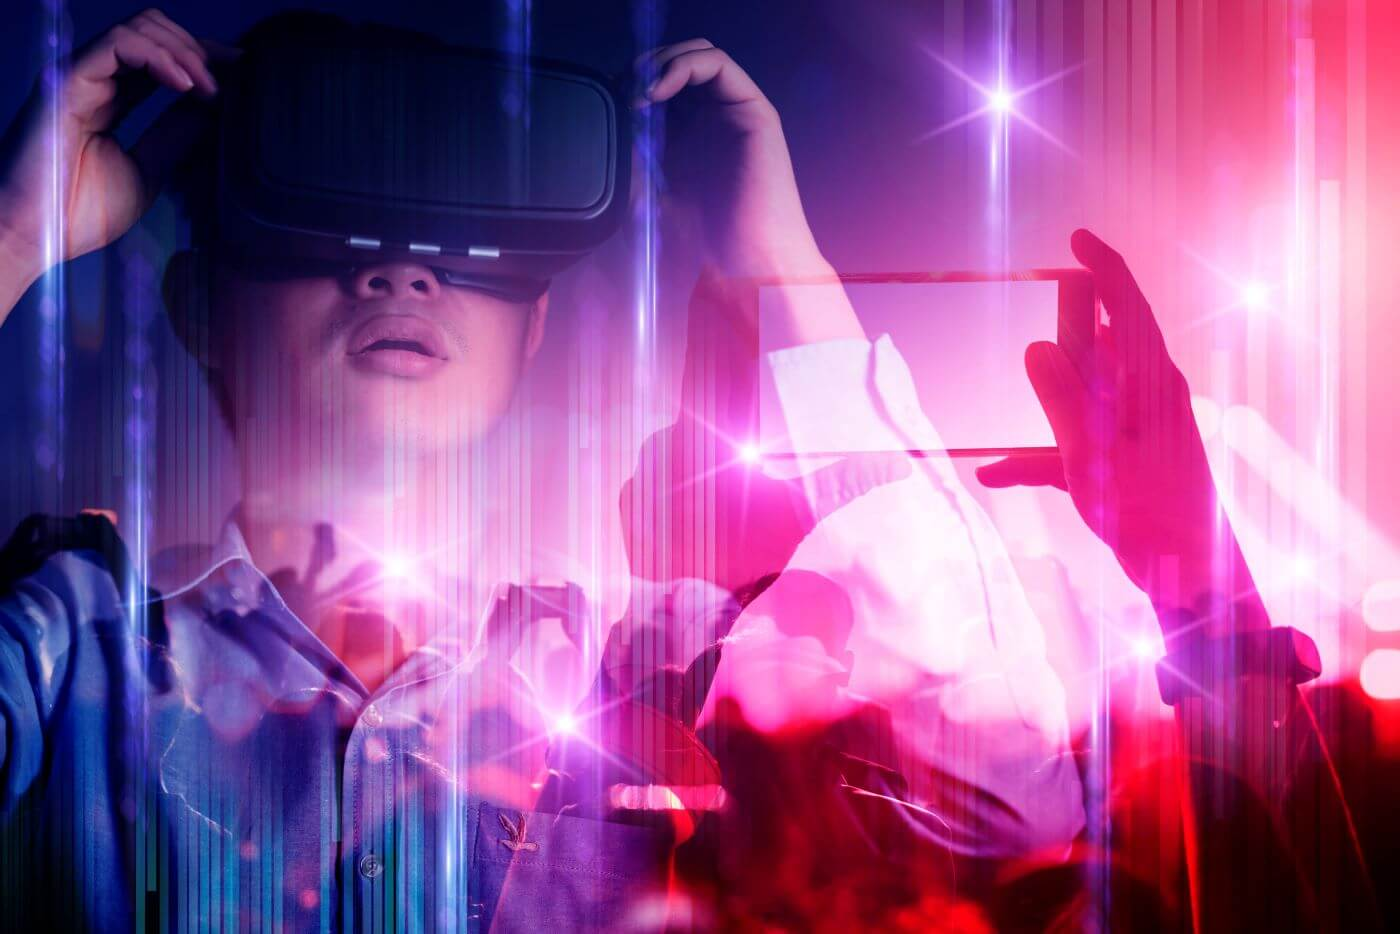 To Engage Remote Audiences, XR Technology Is More Vital Than Ever